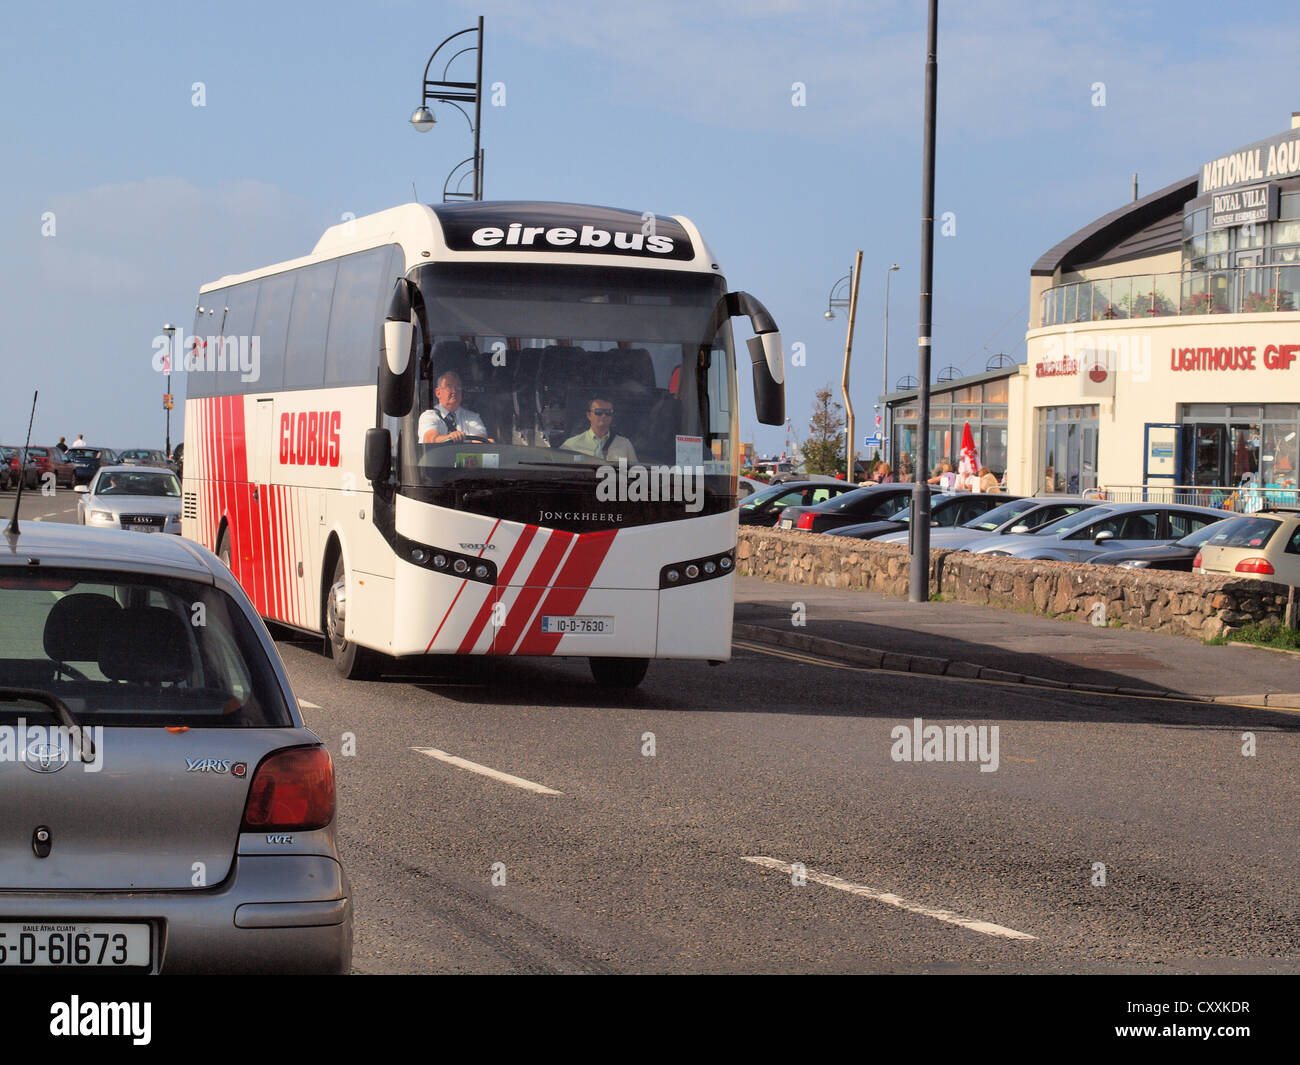 An (Eire-Bus) Globus Excursion Coach journeying along Salt-Hill promenade in Galway city in the West of Ireland. - Stock Image